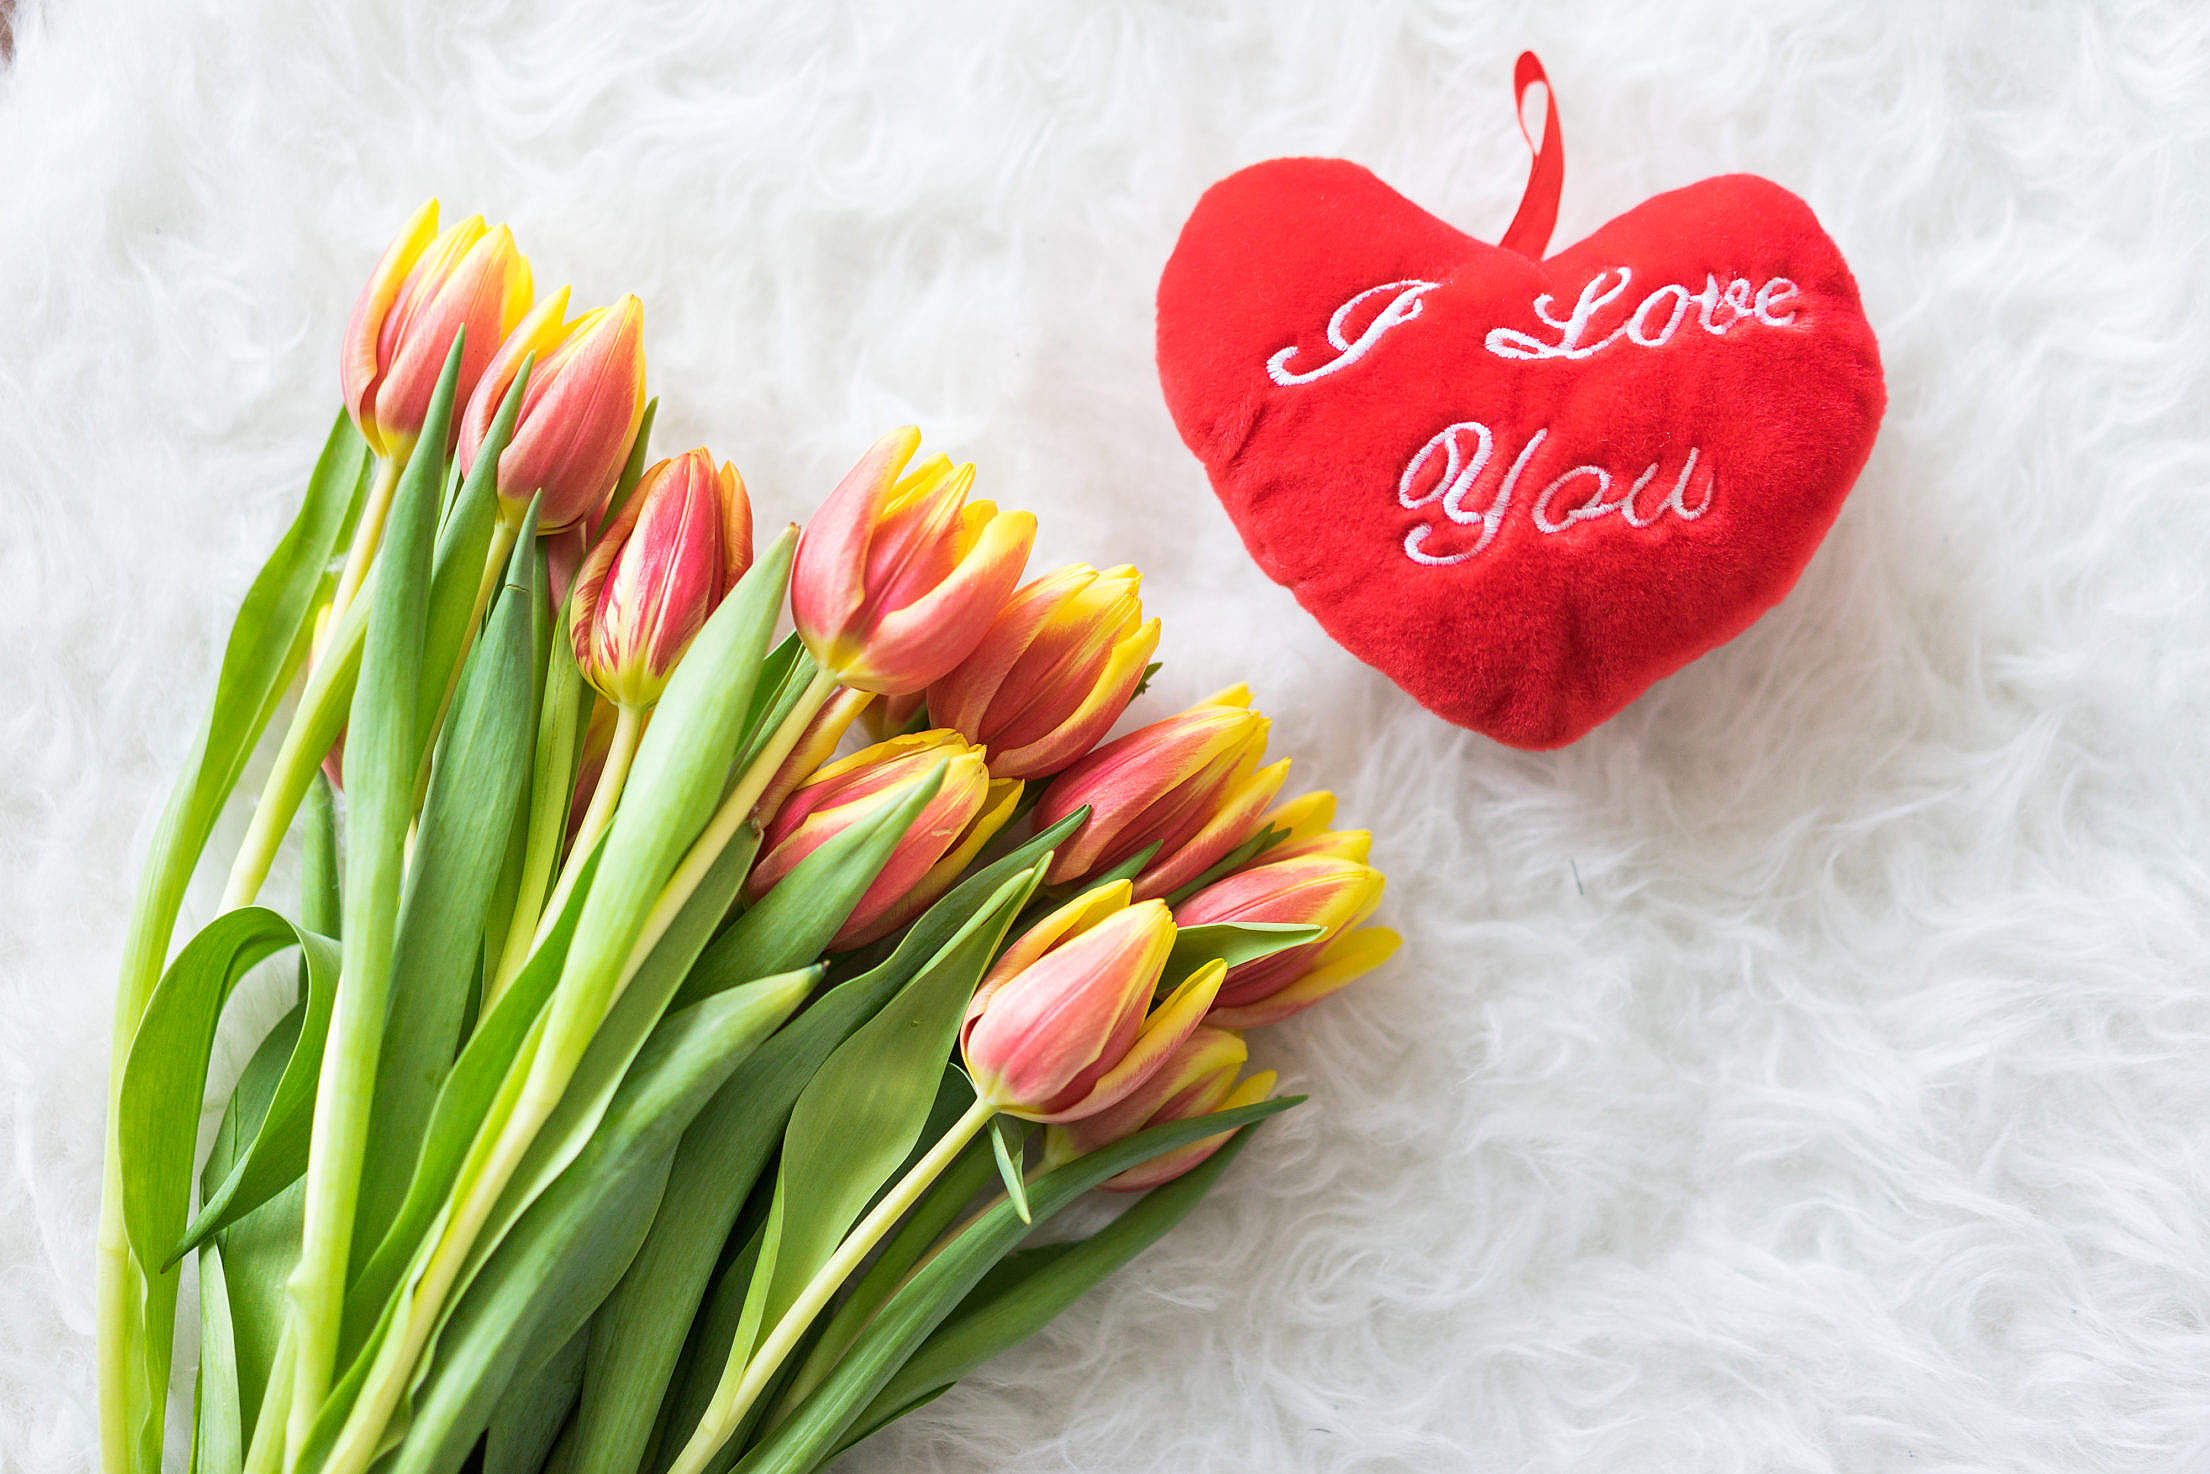 Kees Nelis Tulips With Plush I Love You Heart Free Stock Photo